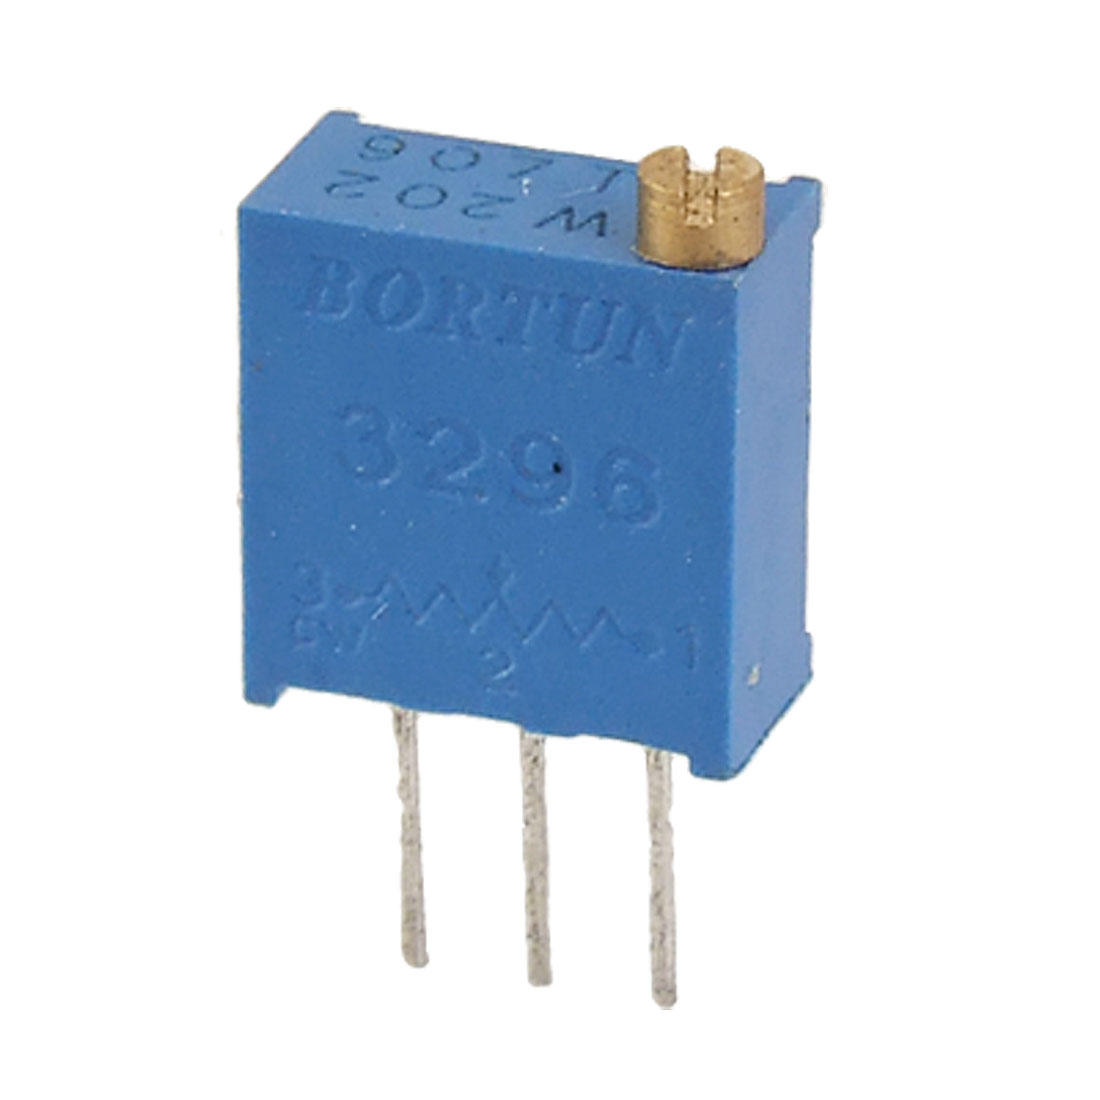 50pcs 3296W 2K ohm Trimmer Pot Potentiometer Variable Resistor